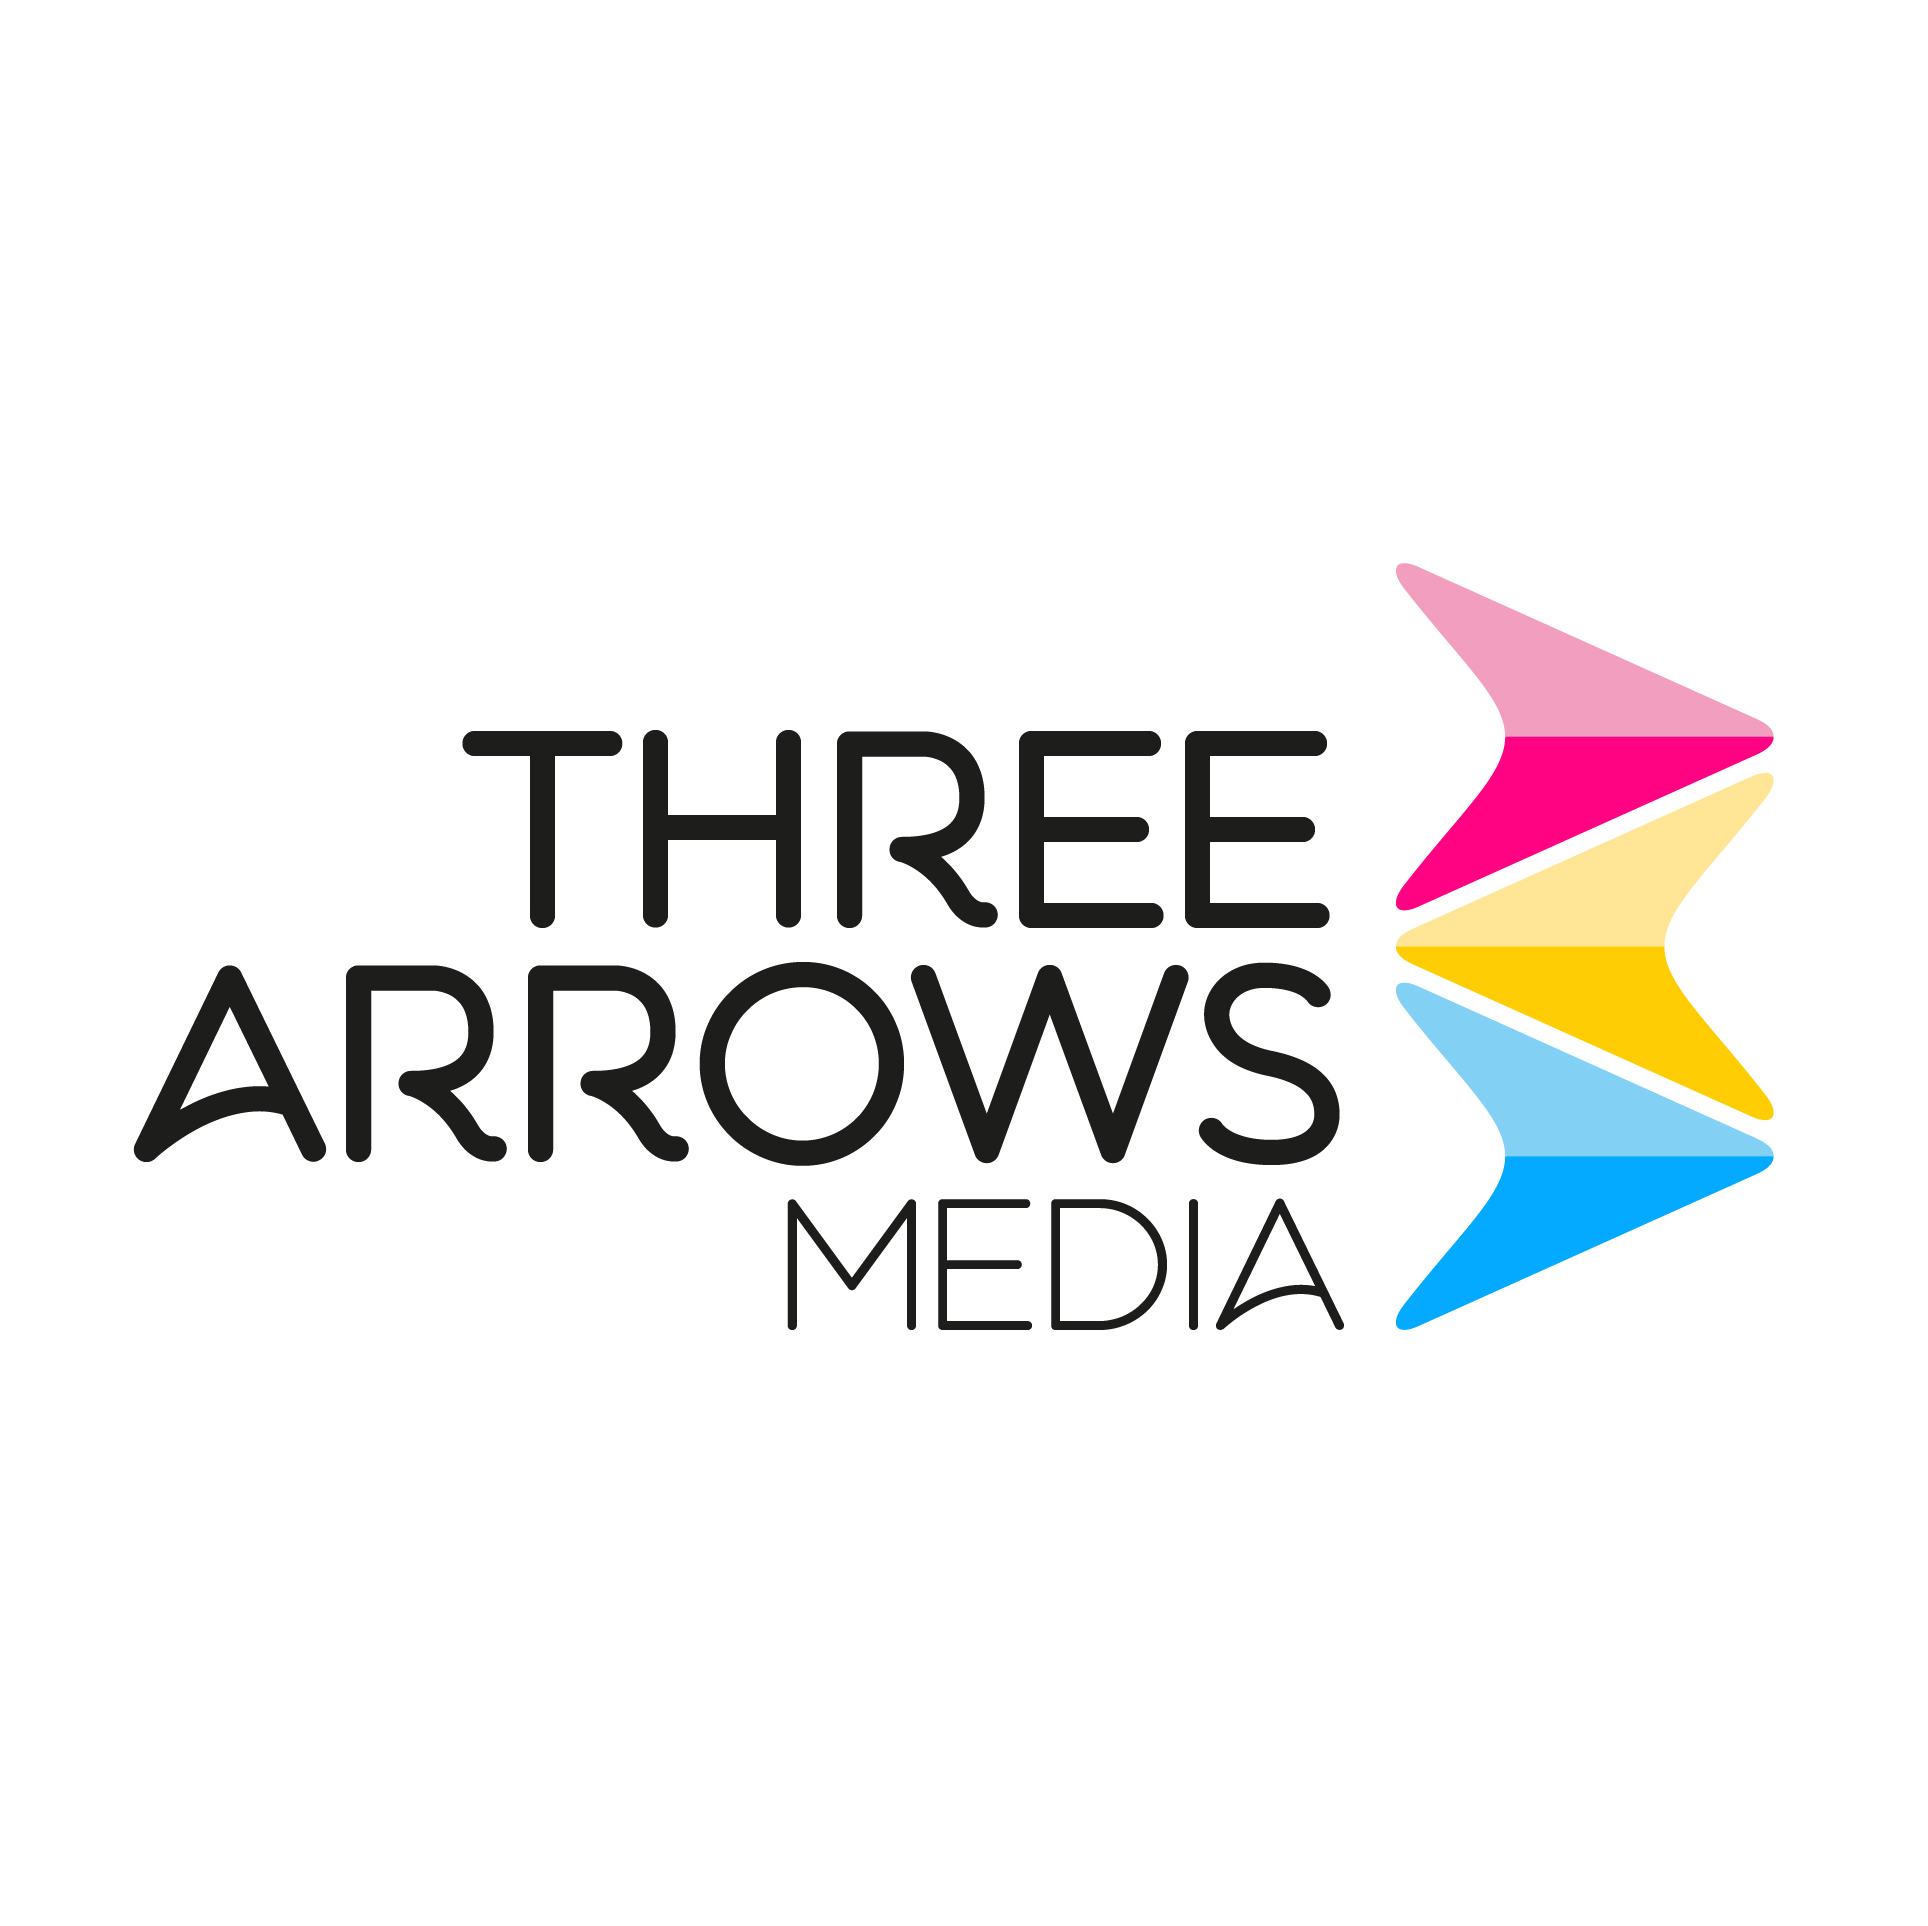 Three Arrows Media Ltd  - Three Arrows is a full service entertainment & production company.They specialise in the development and creation of children's content for major broadcasters and entertainment companies.